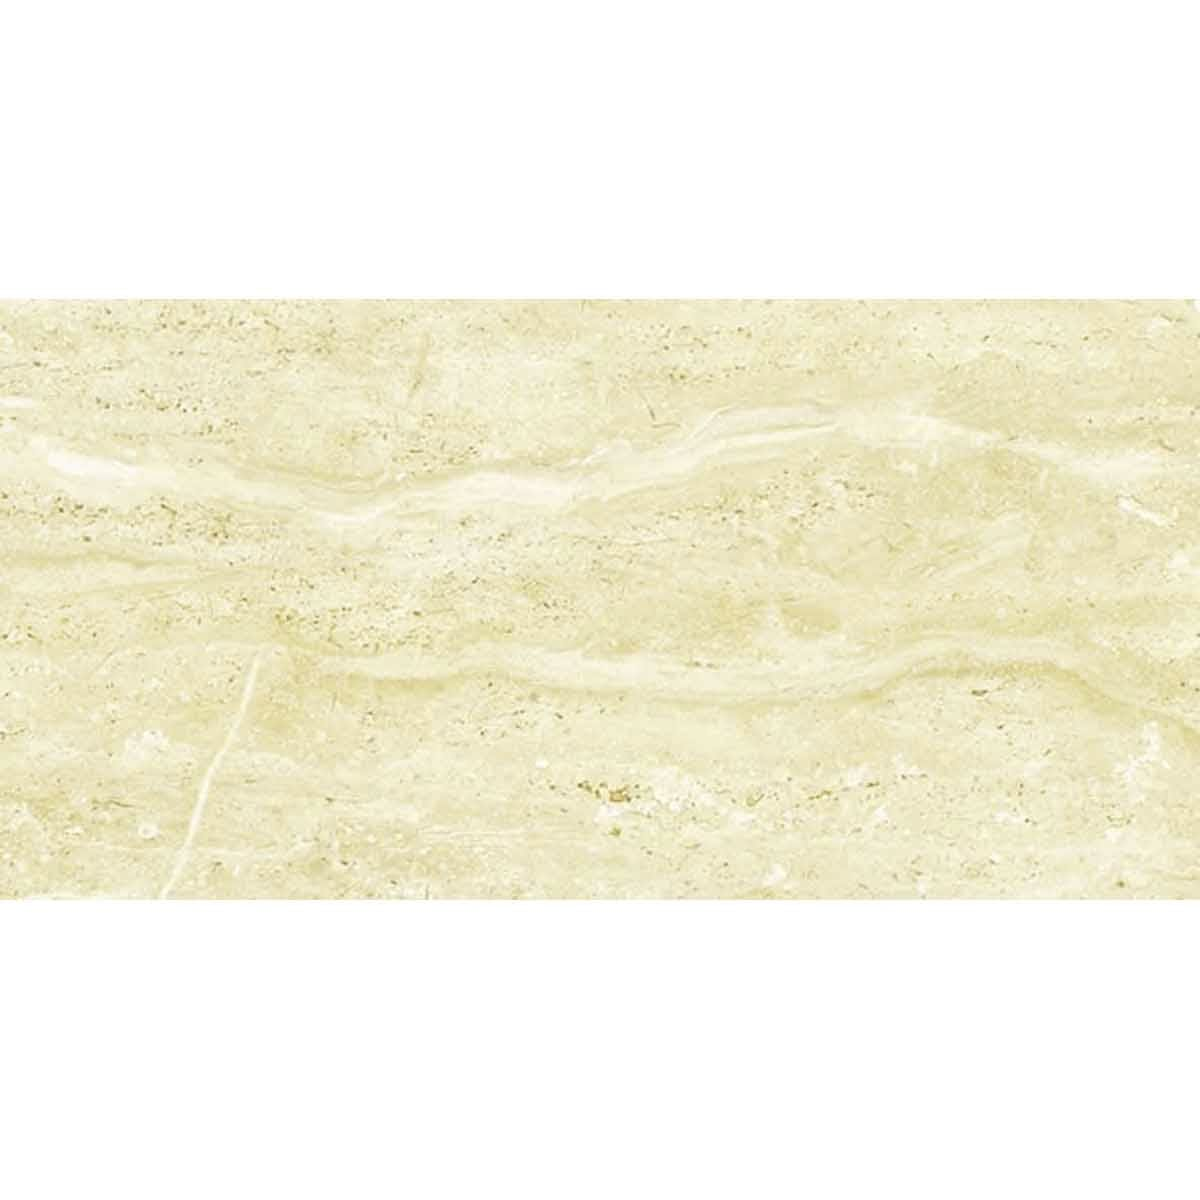 Eleganza Classic Travertino HD New Beige (300x600 mm)